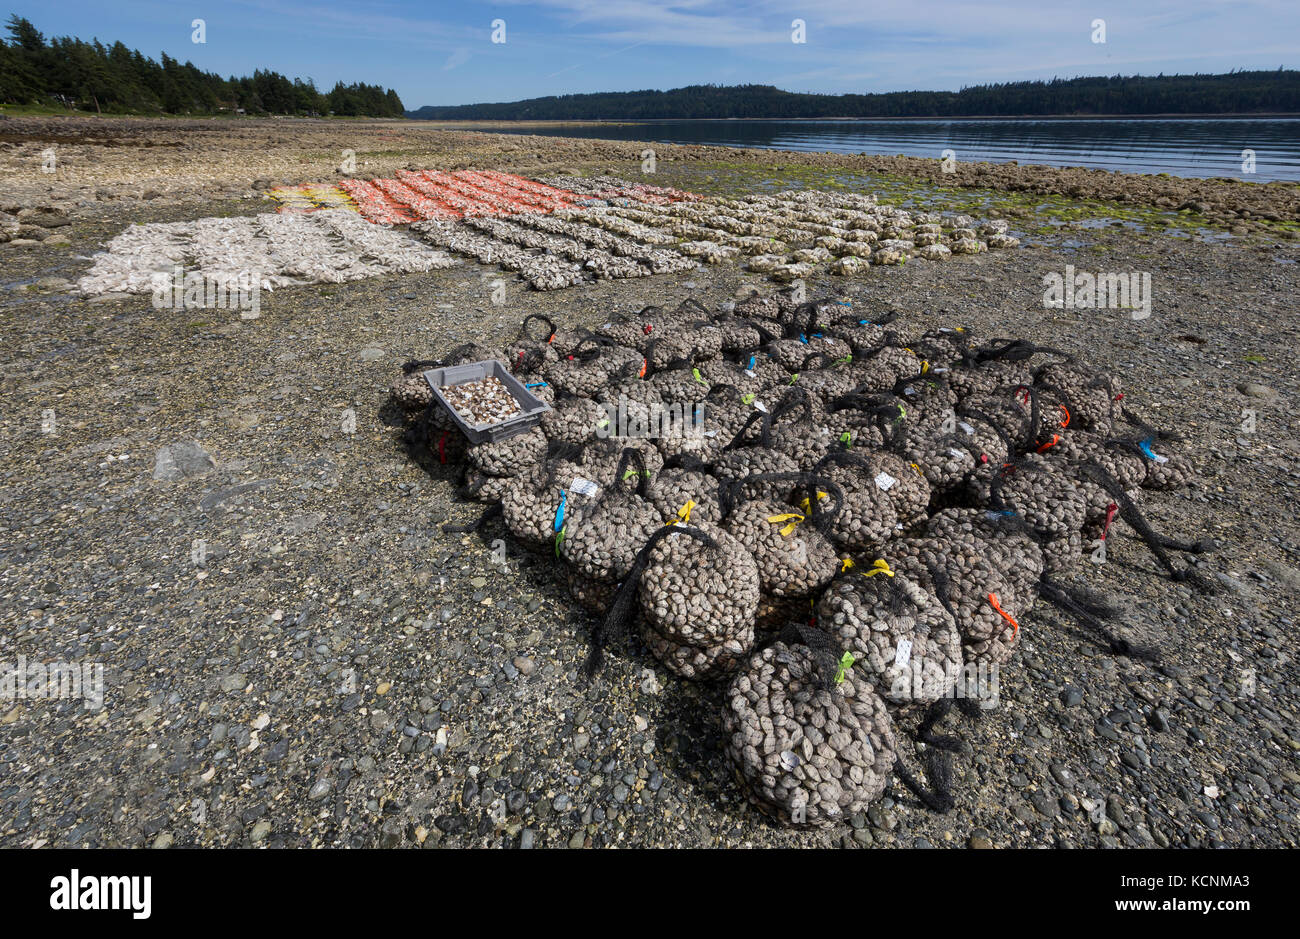 Oysters and Clams harvested on foreshore leases line the shores of Fanny Bay near the Comox Valley.  Vancouver Island. - Stock Image